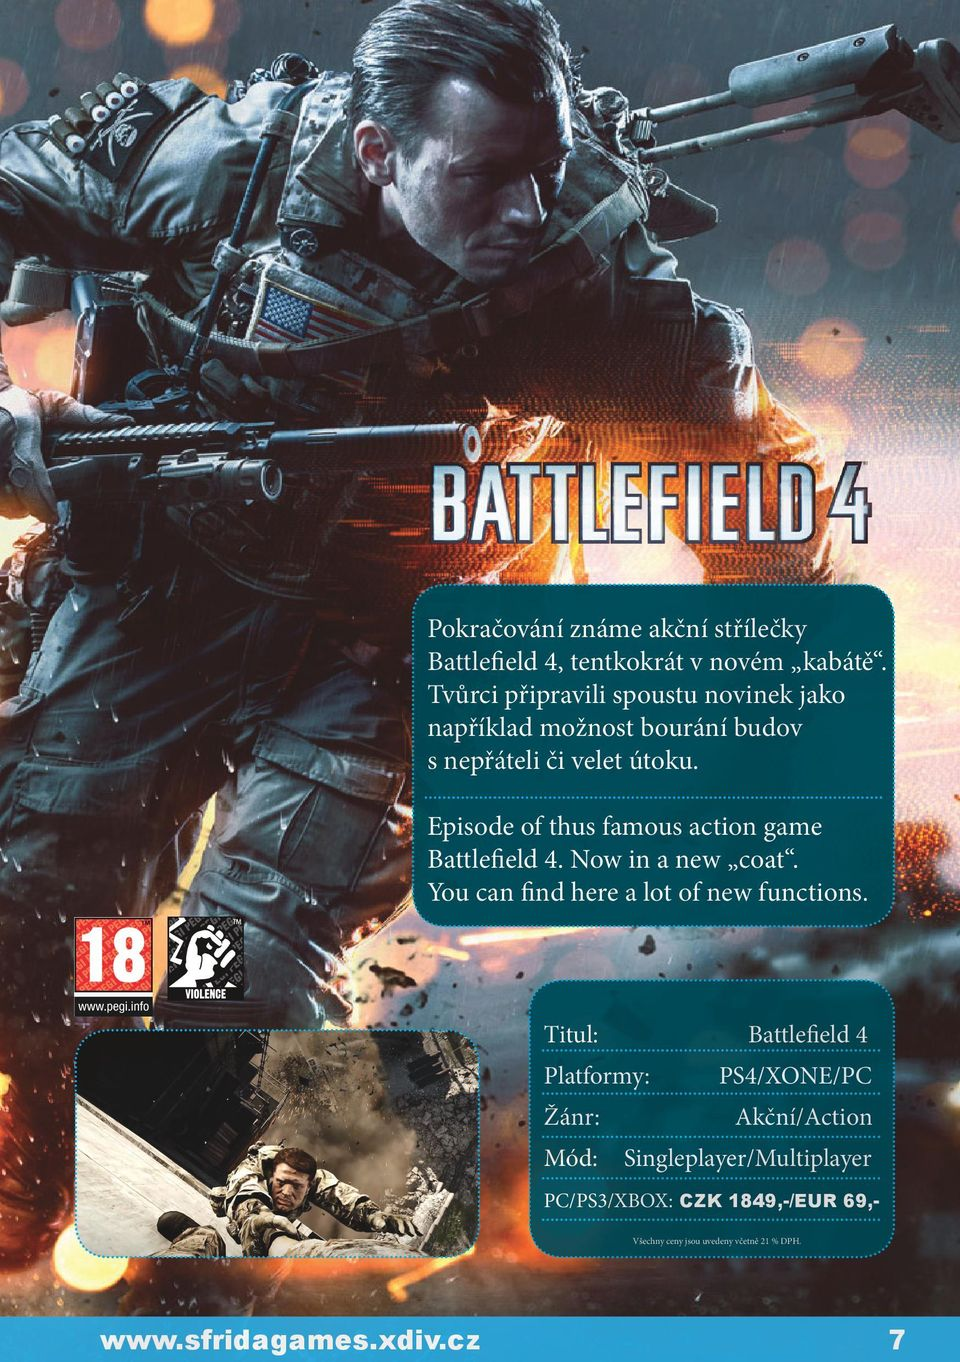 Episode of thus famous action game Battlefield 4. Now in a new coat. You can find here a lot of new functions.